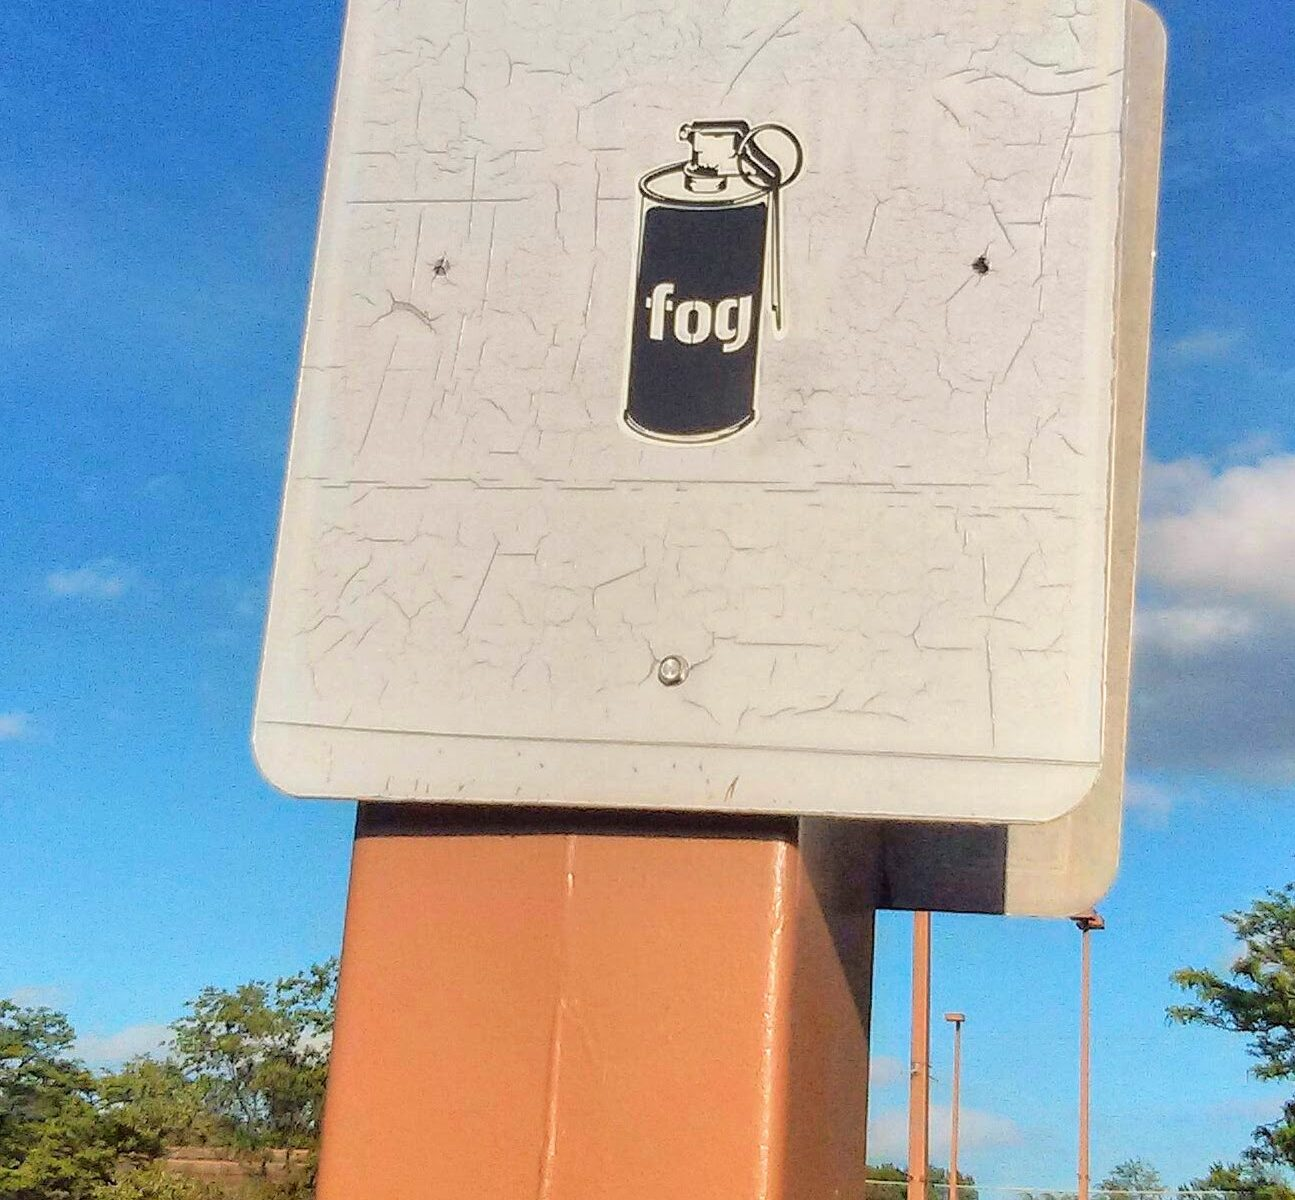 a sticker depicting a fog aerosol can has been placed on a faded out parking notice sign.